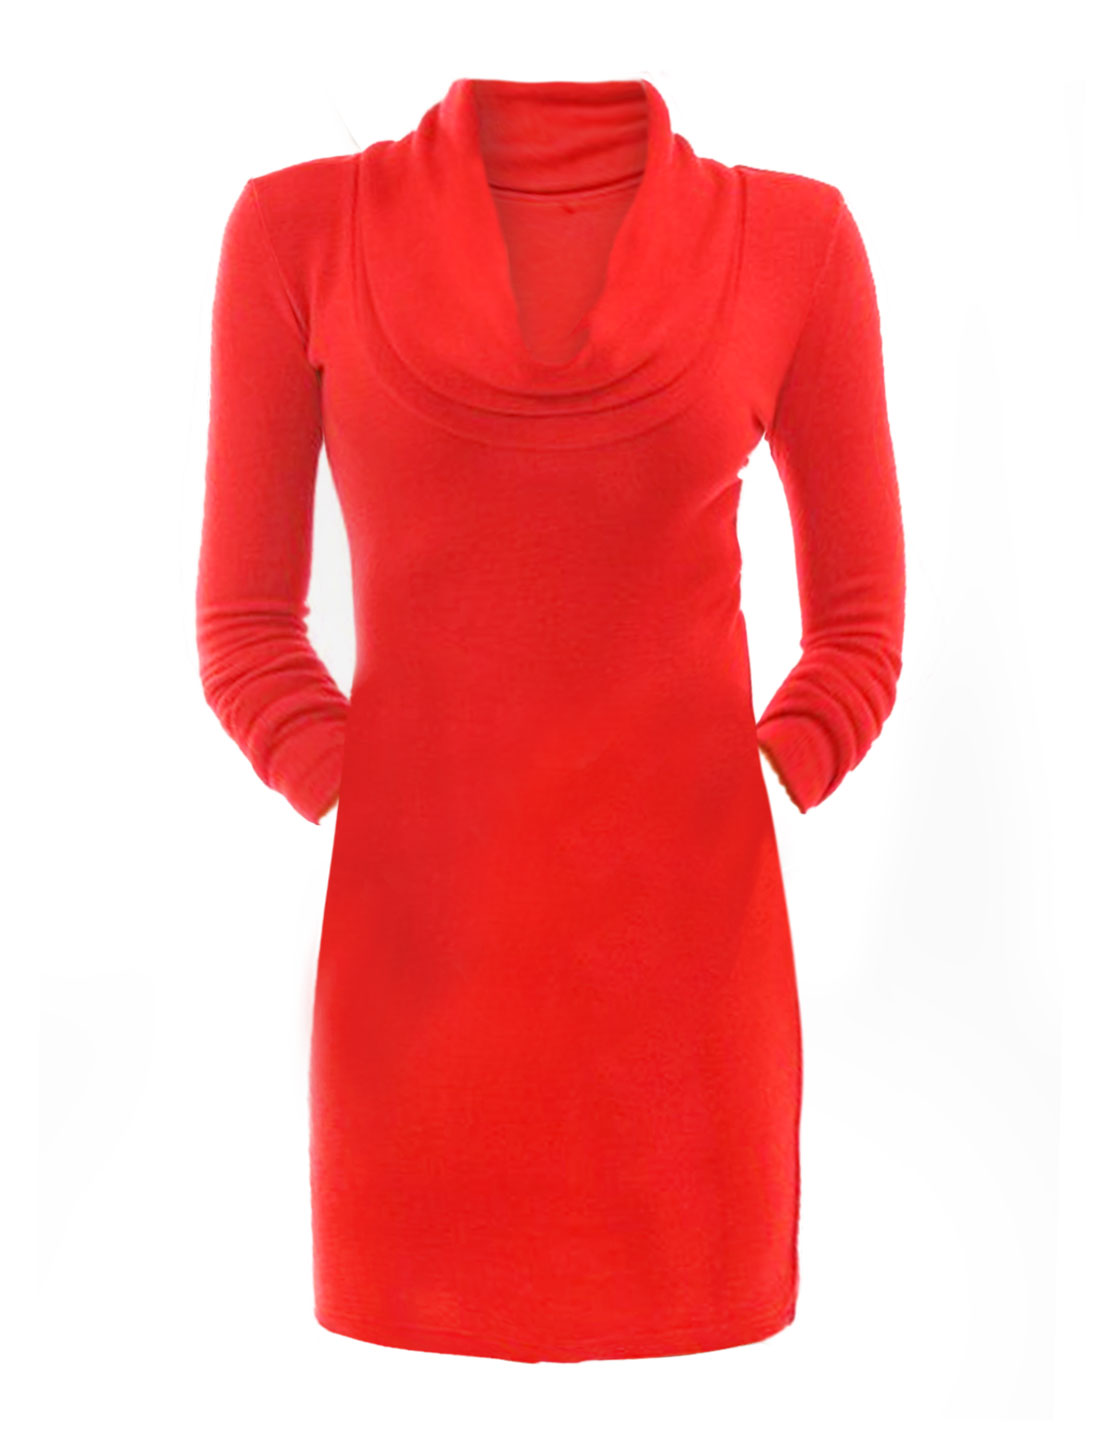 Ladies Cowl Neck Long Sleeves Unlined Skinny Dress Red XL